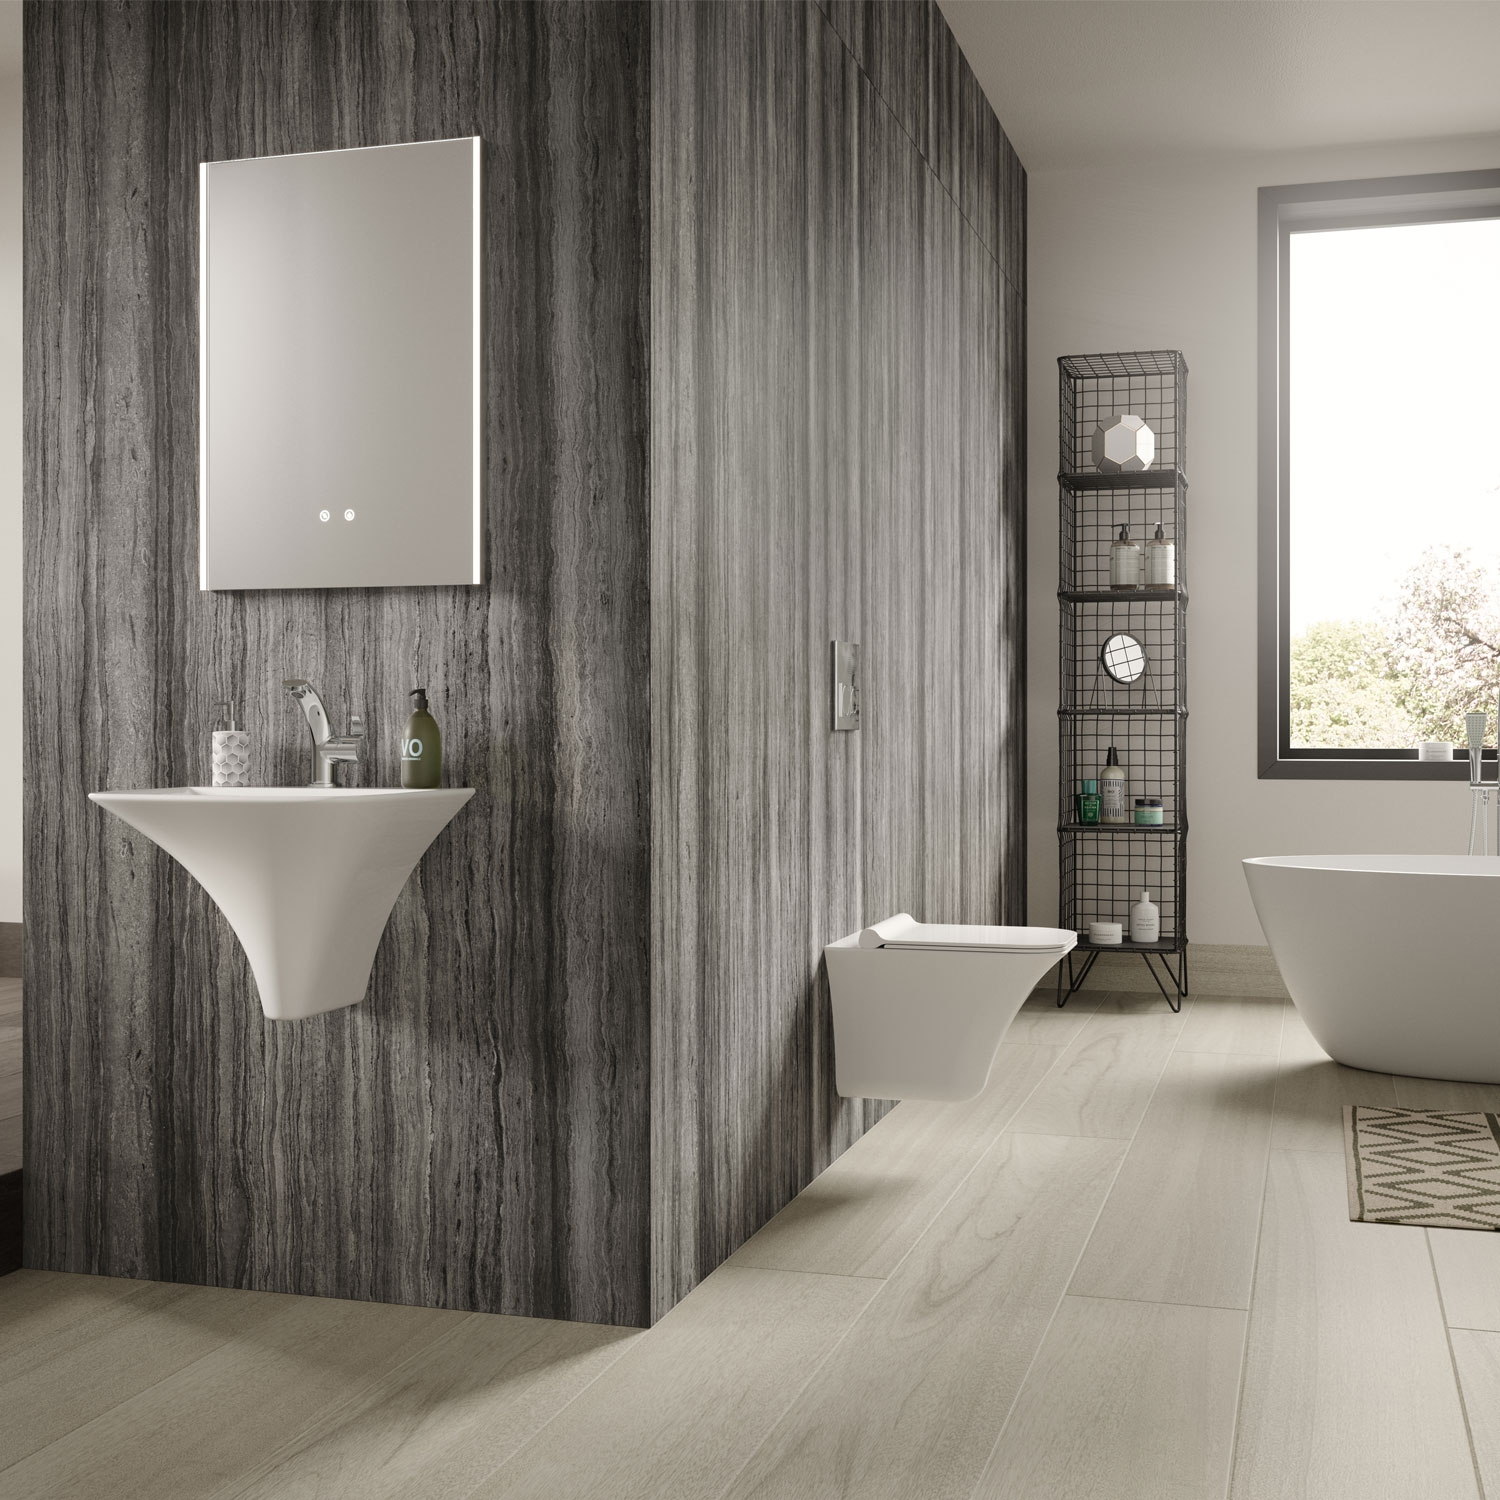 Hudson Reed Reverie Bathroom Mirror 700mm H x 500mm W-0